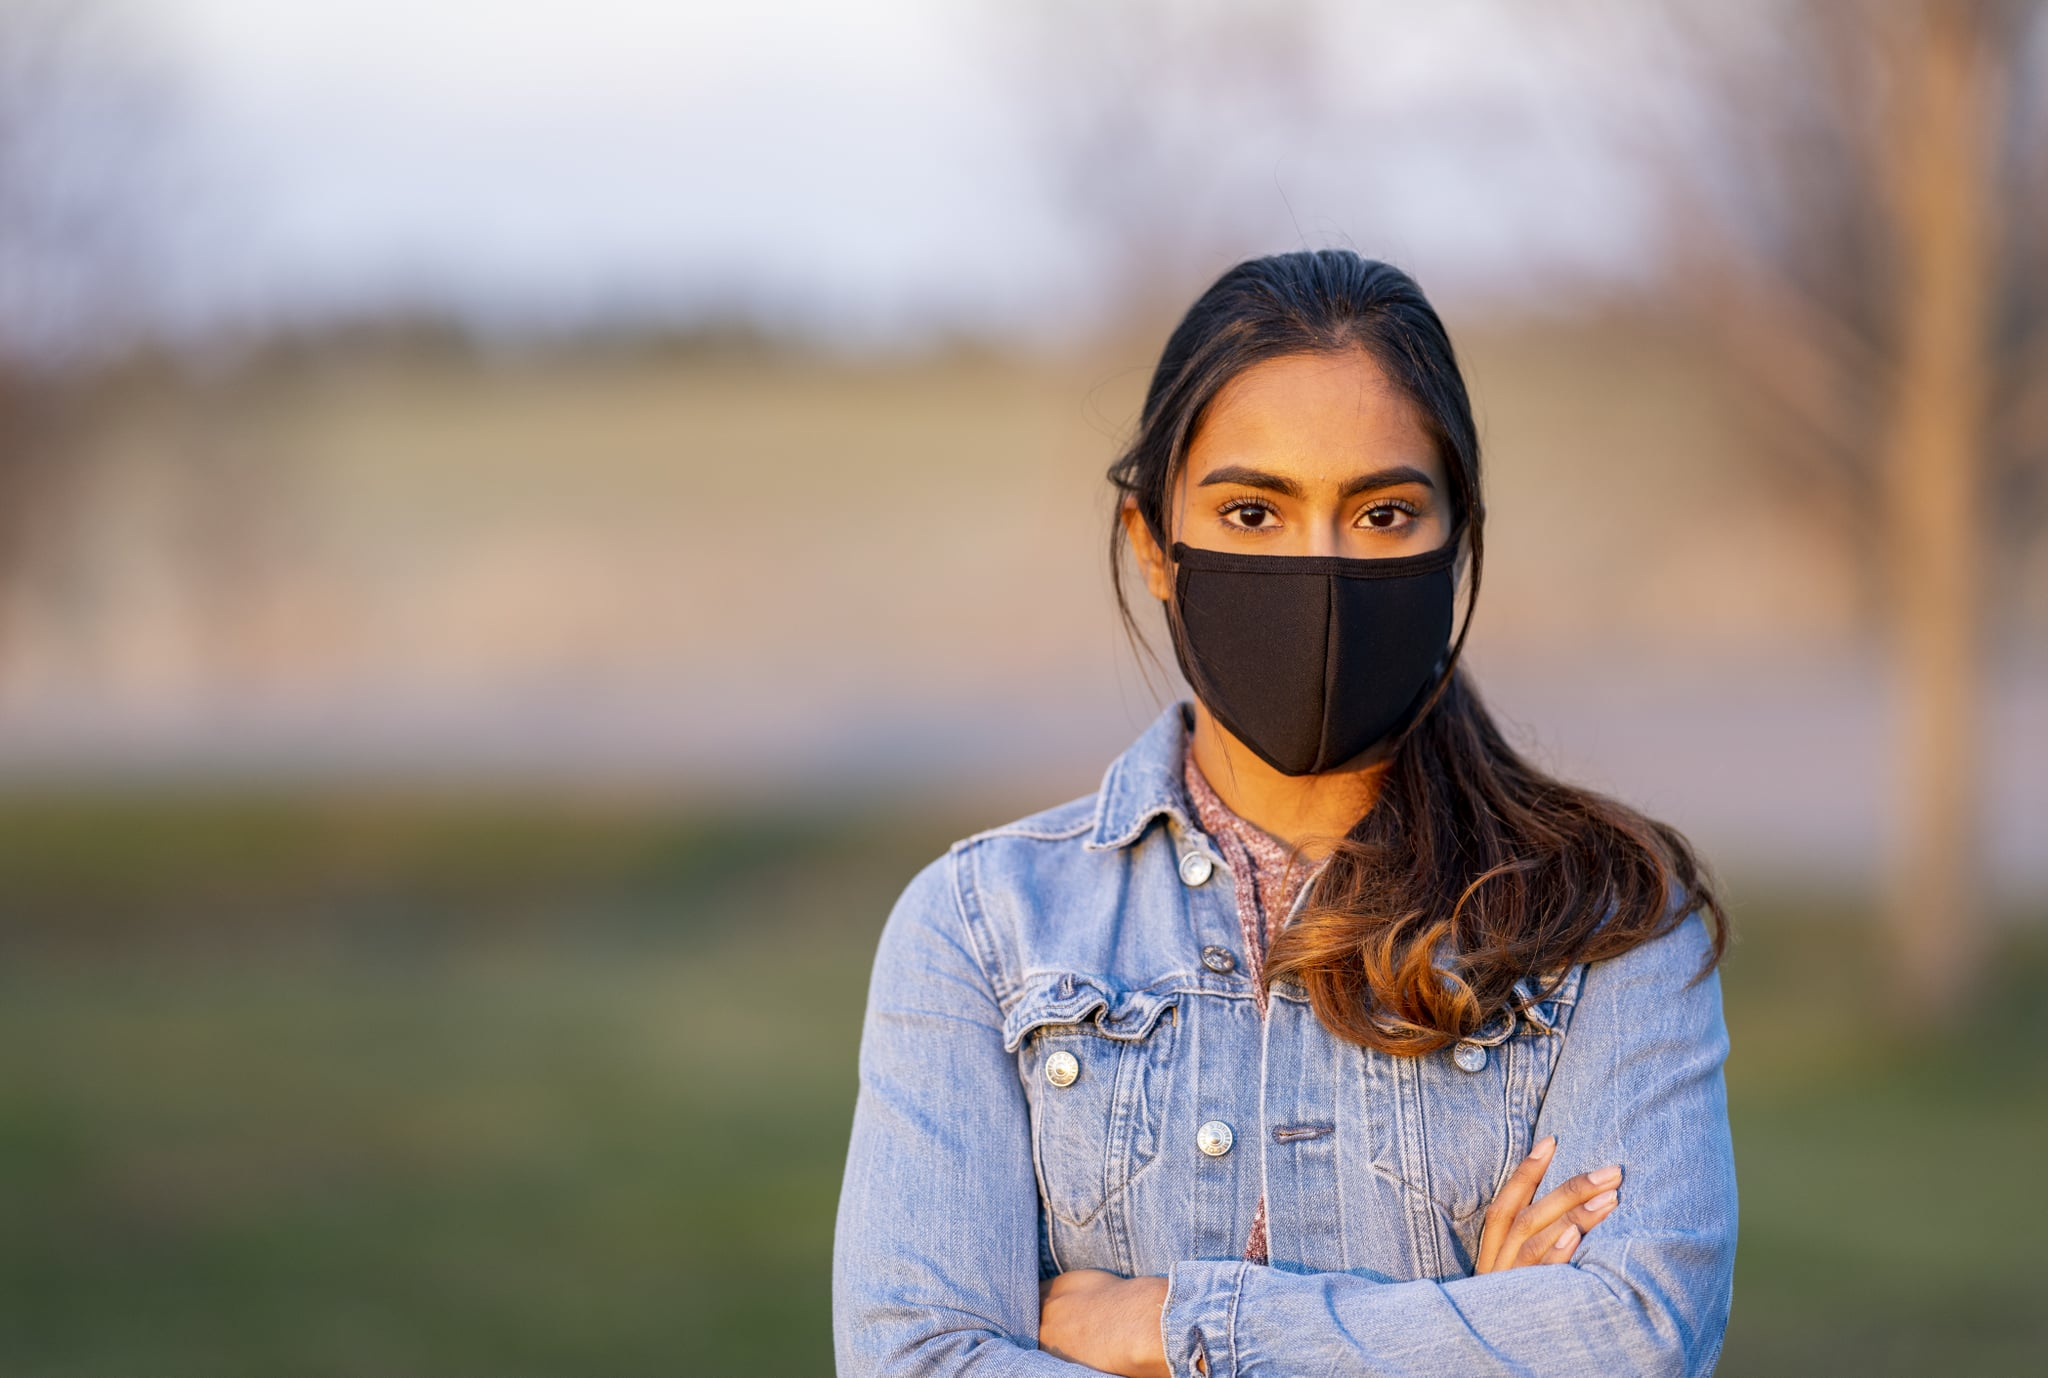 Ethnic girl standing outside wearing a protective mask during a beautiful sunset.